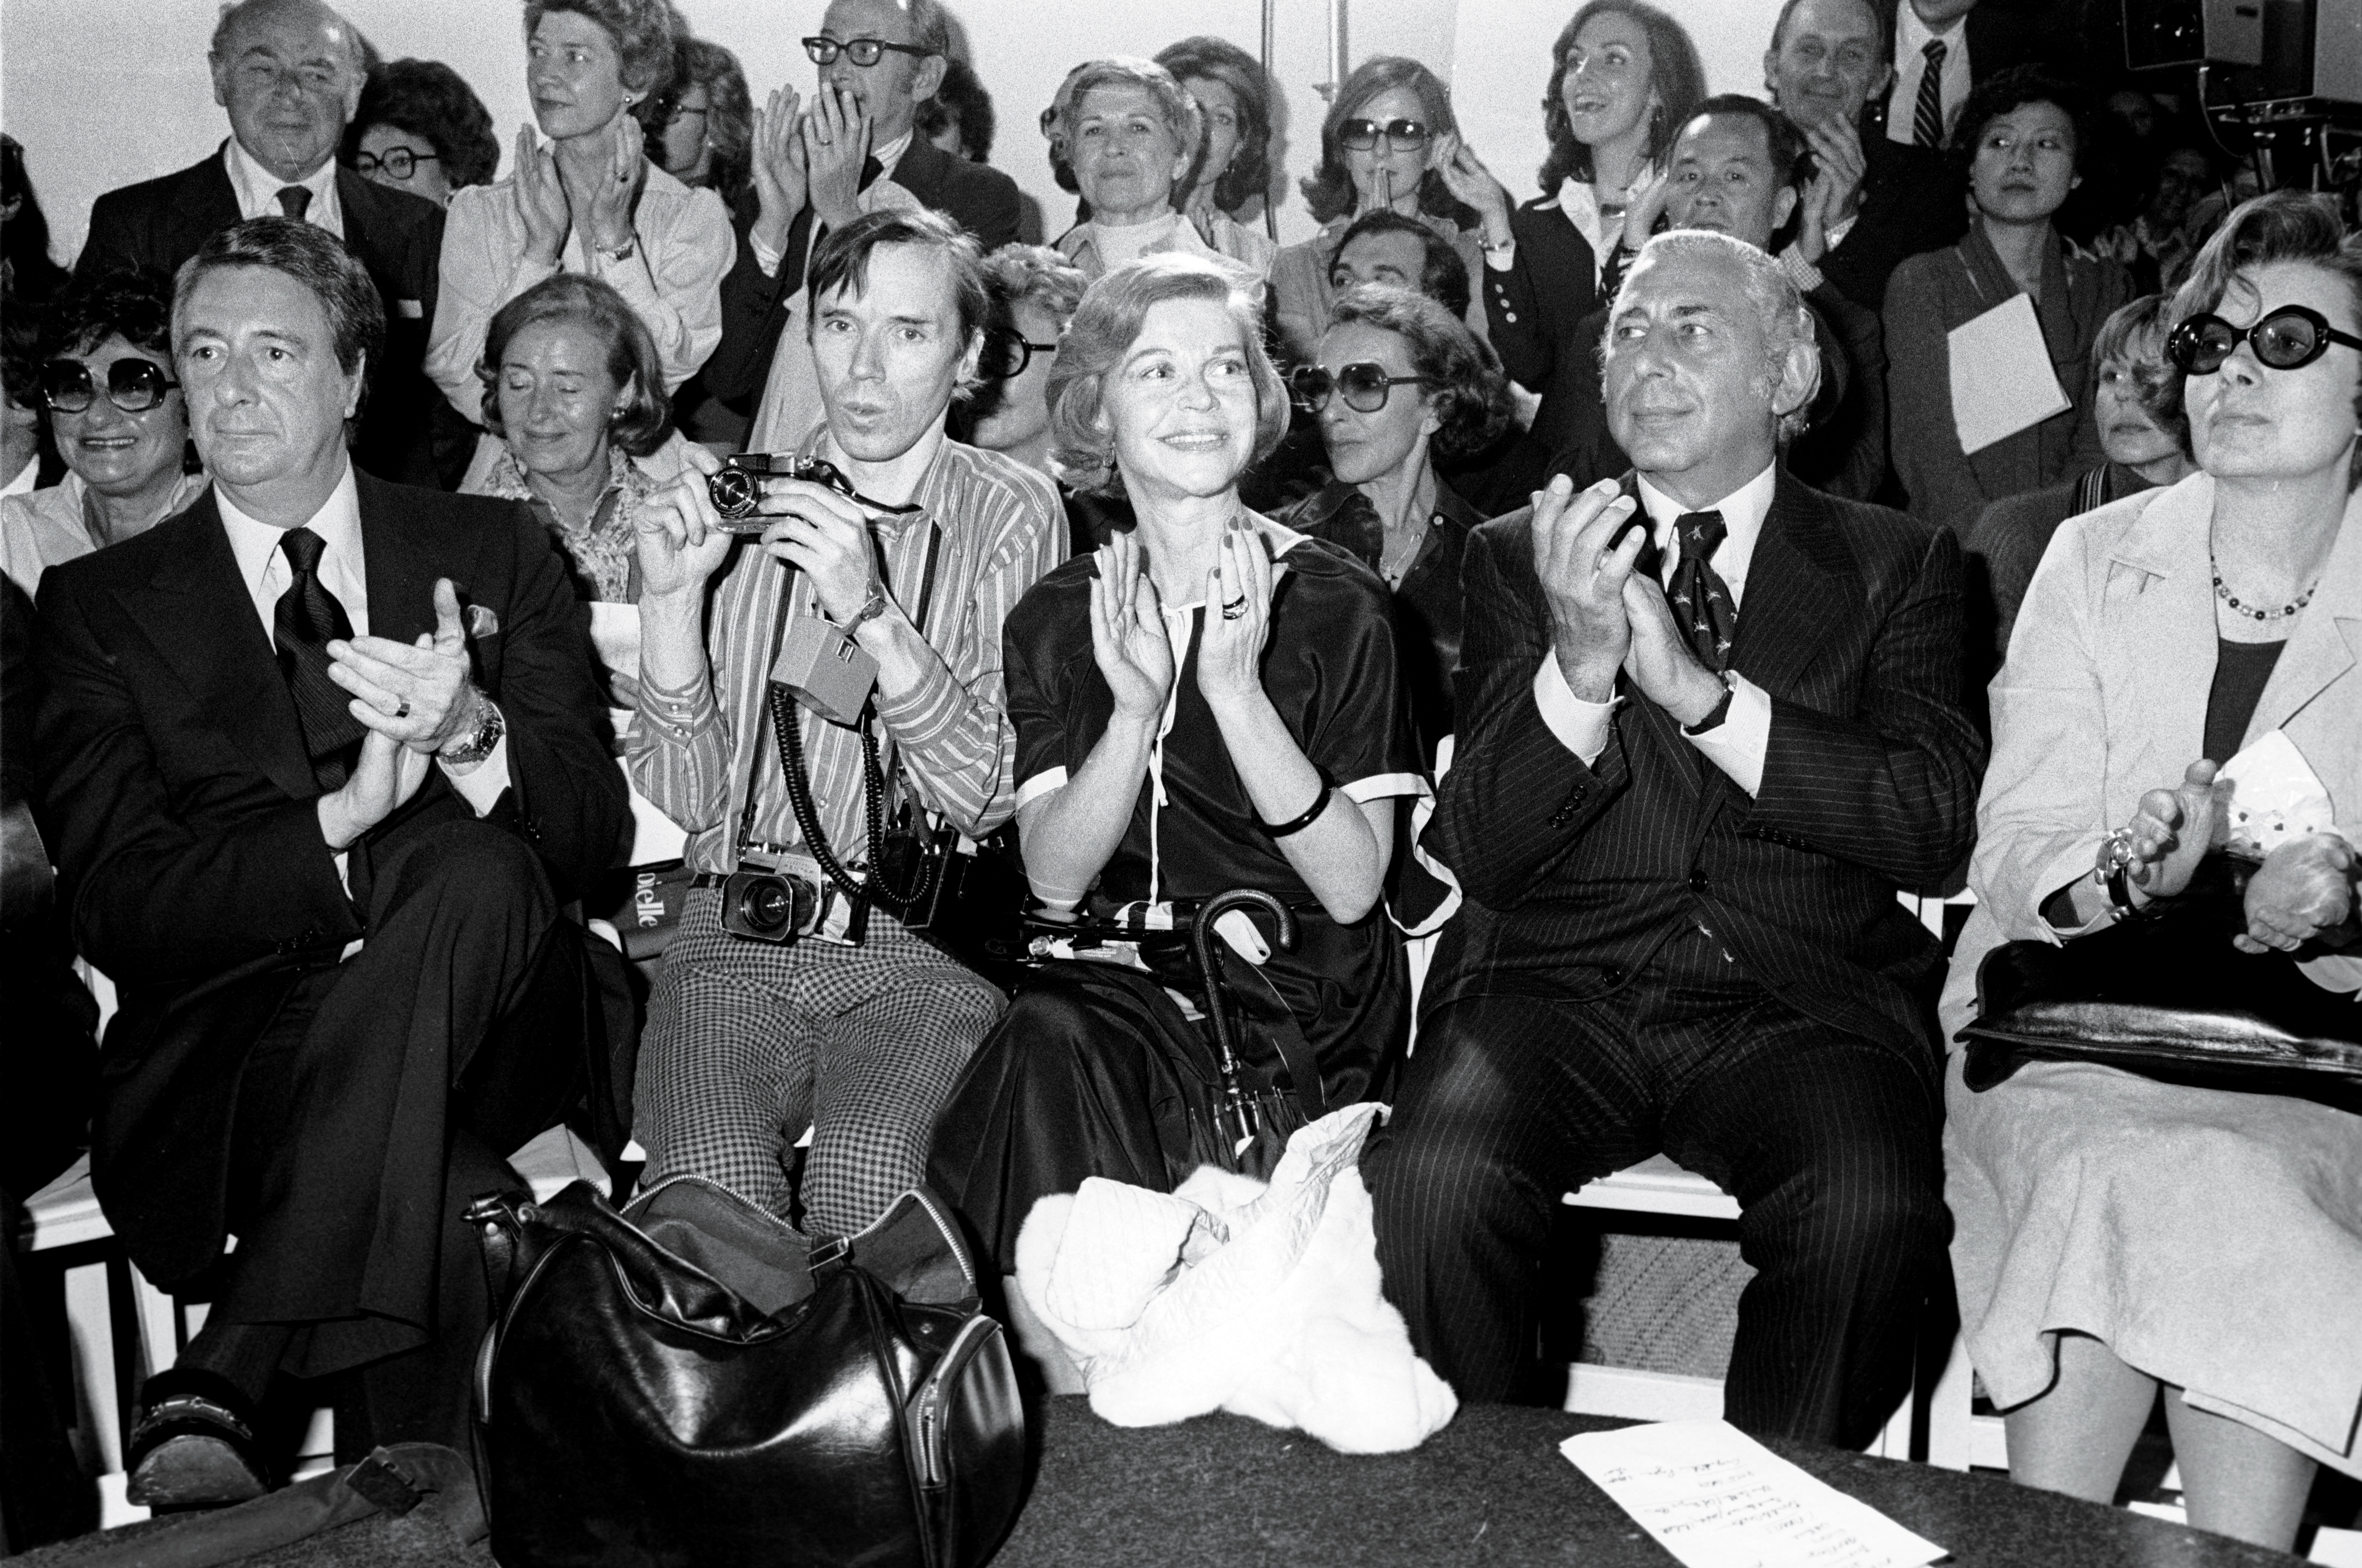 Bill Cunningham covering a Calvin Klein show in 1975 at The Flamingo.